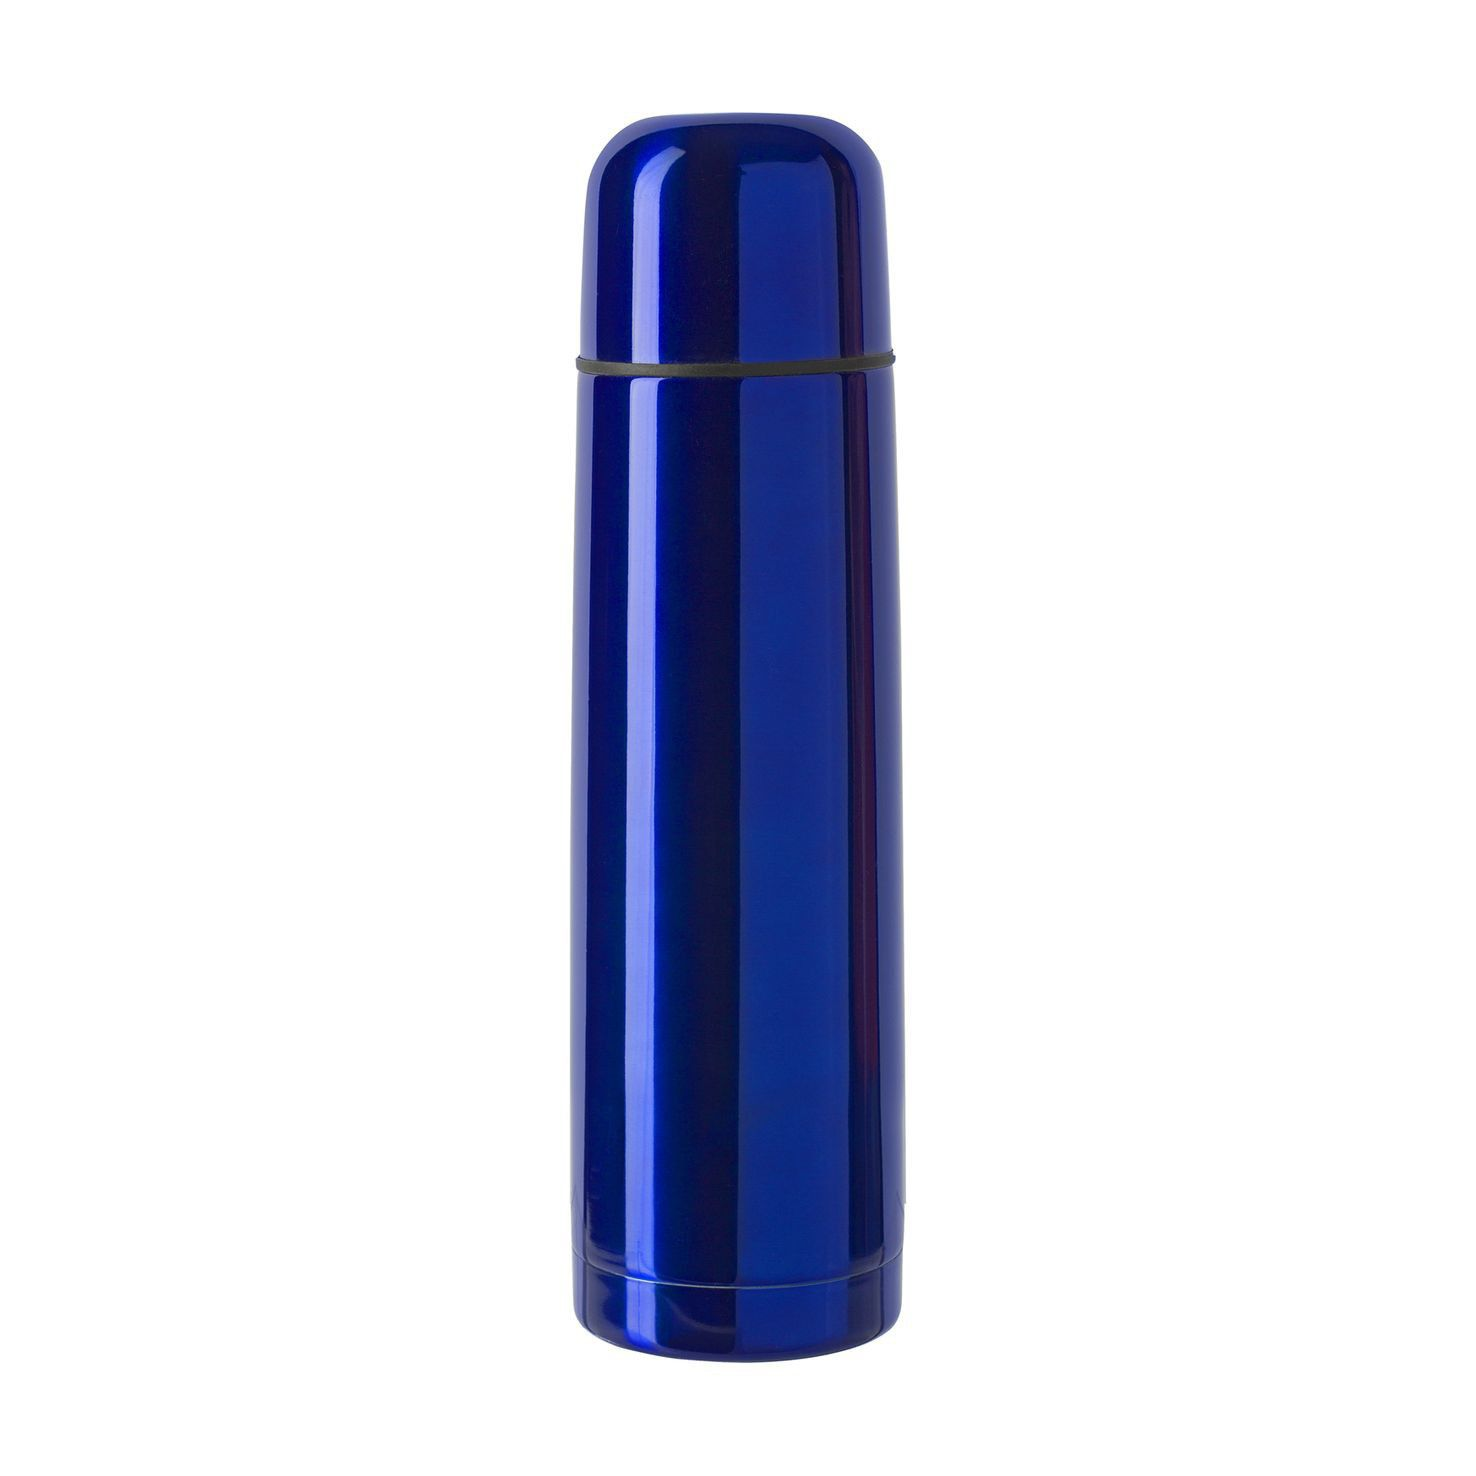 Blauwe Thermosfles | Vacuüm | 500 ml